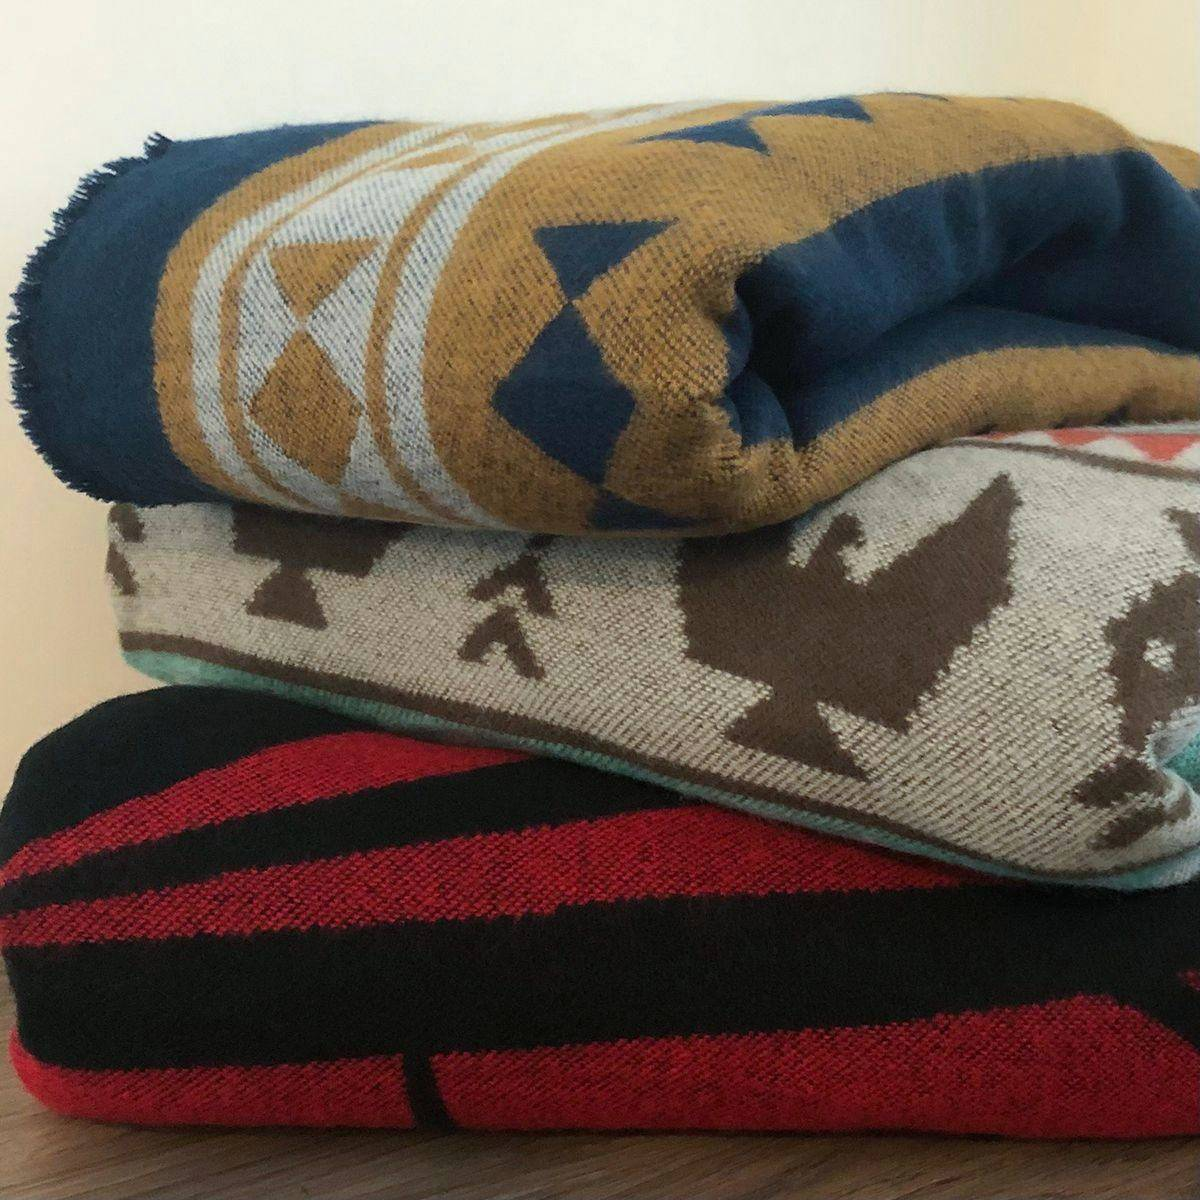 Blankets for everyone!-2